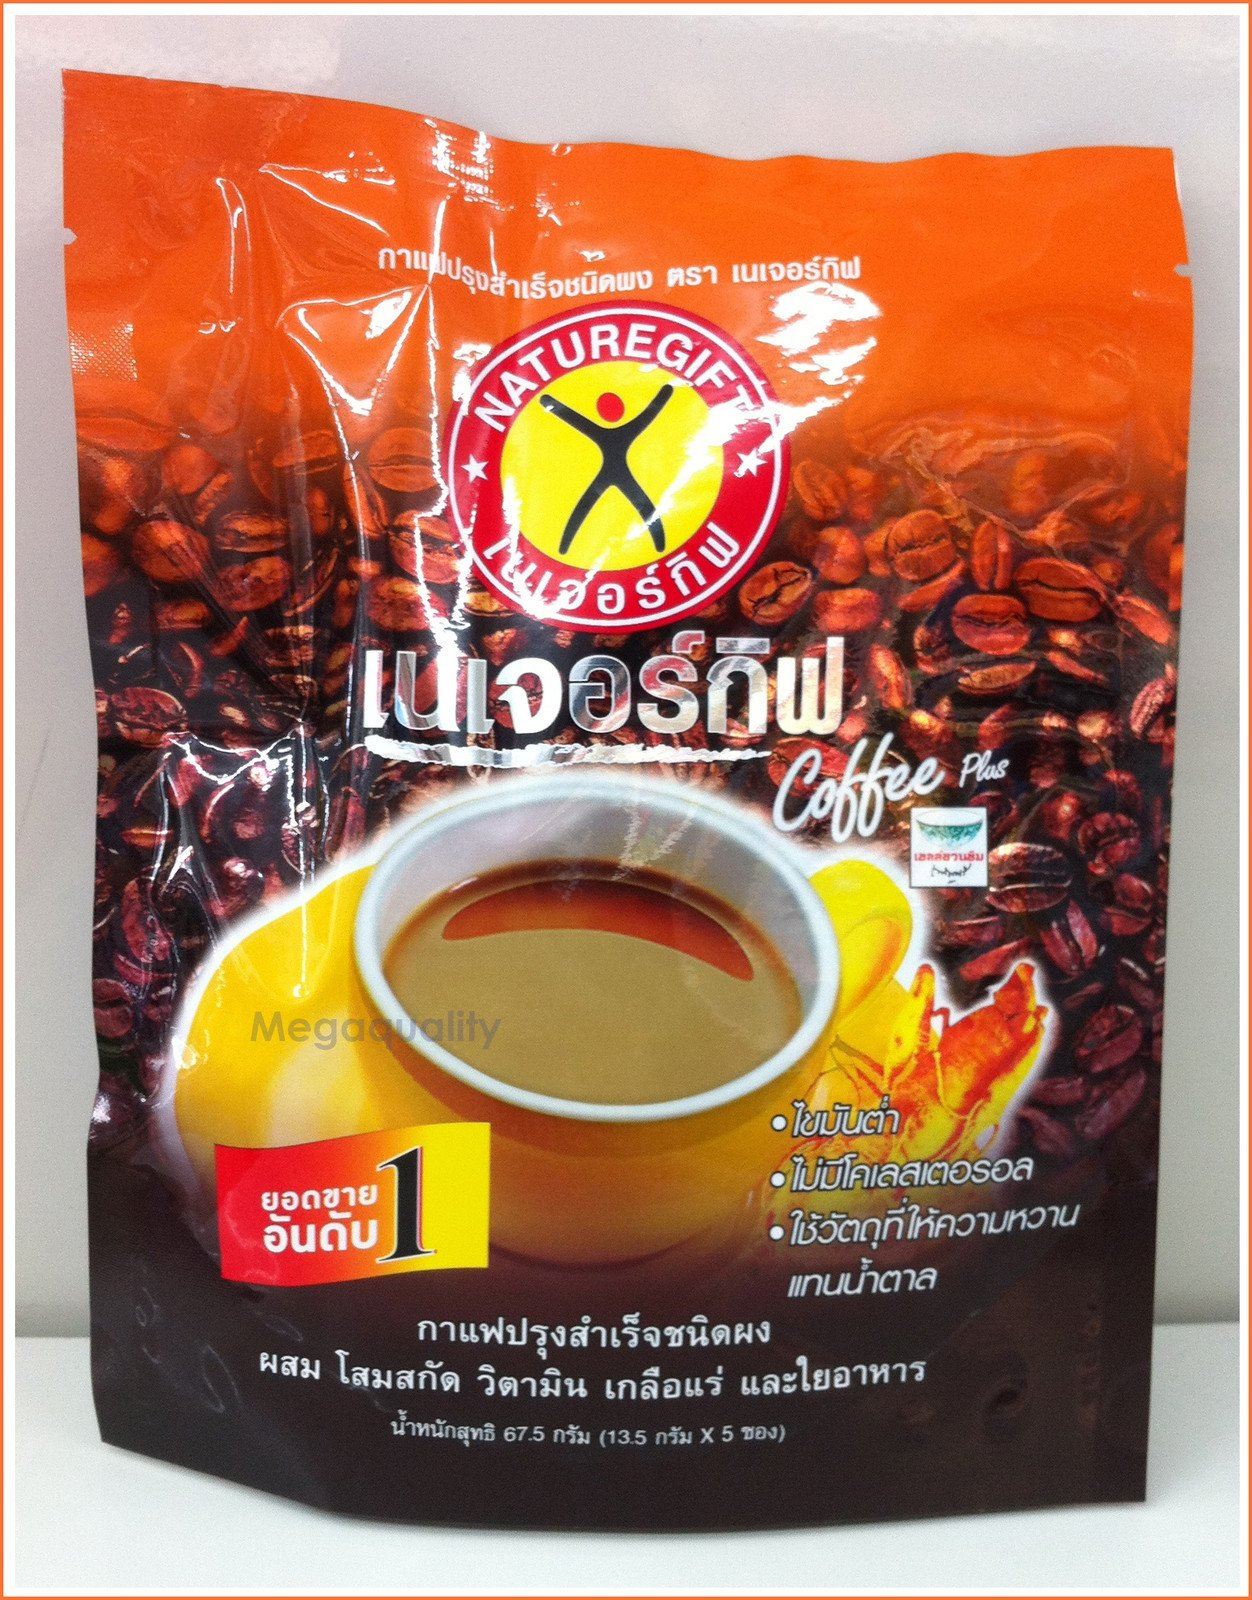 5x Naturegift Coffee Plus Ginseng Extract Diet and Weight Loss 5 Sachets Best Product From Thailand